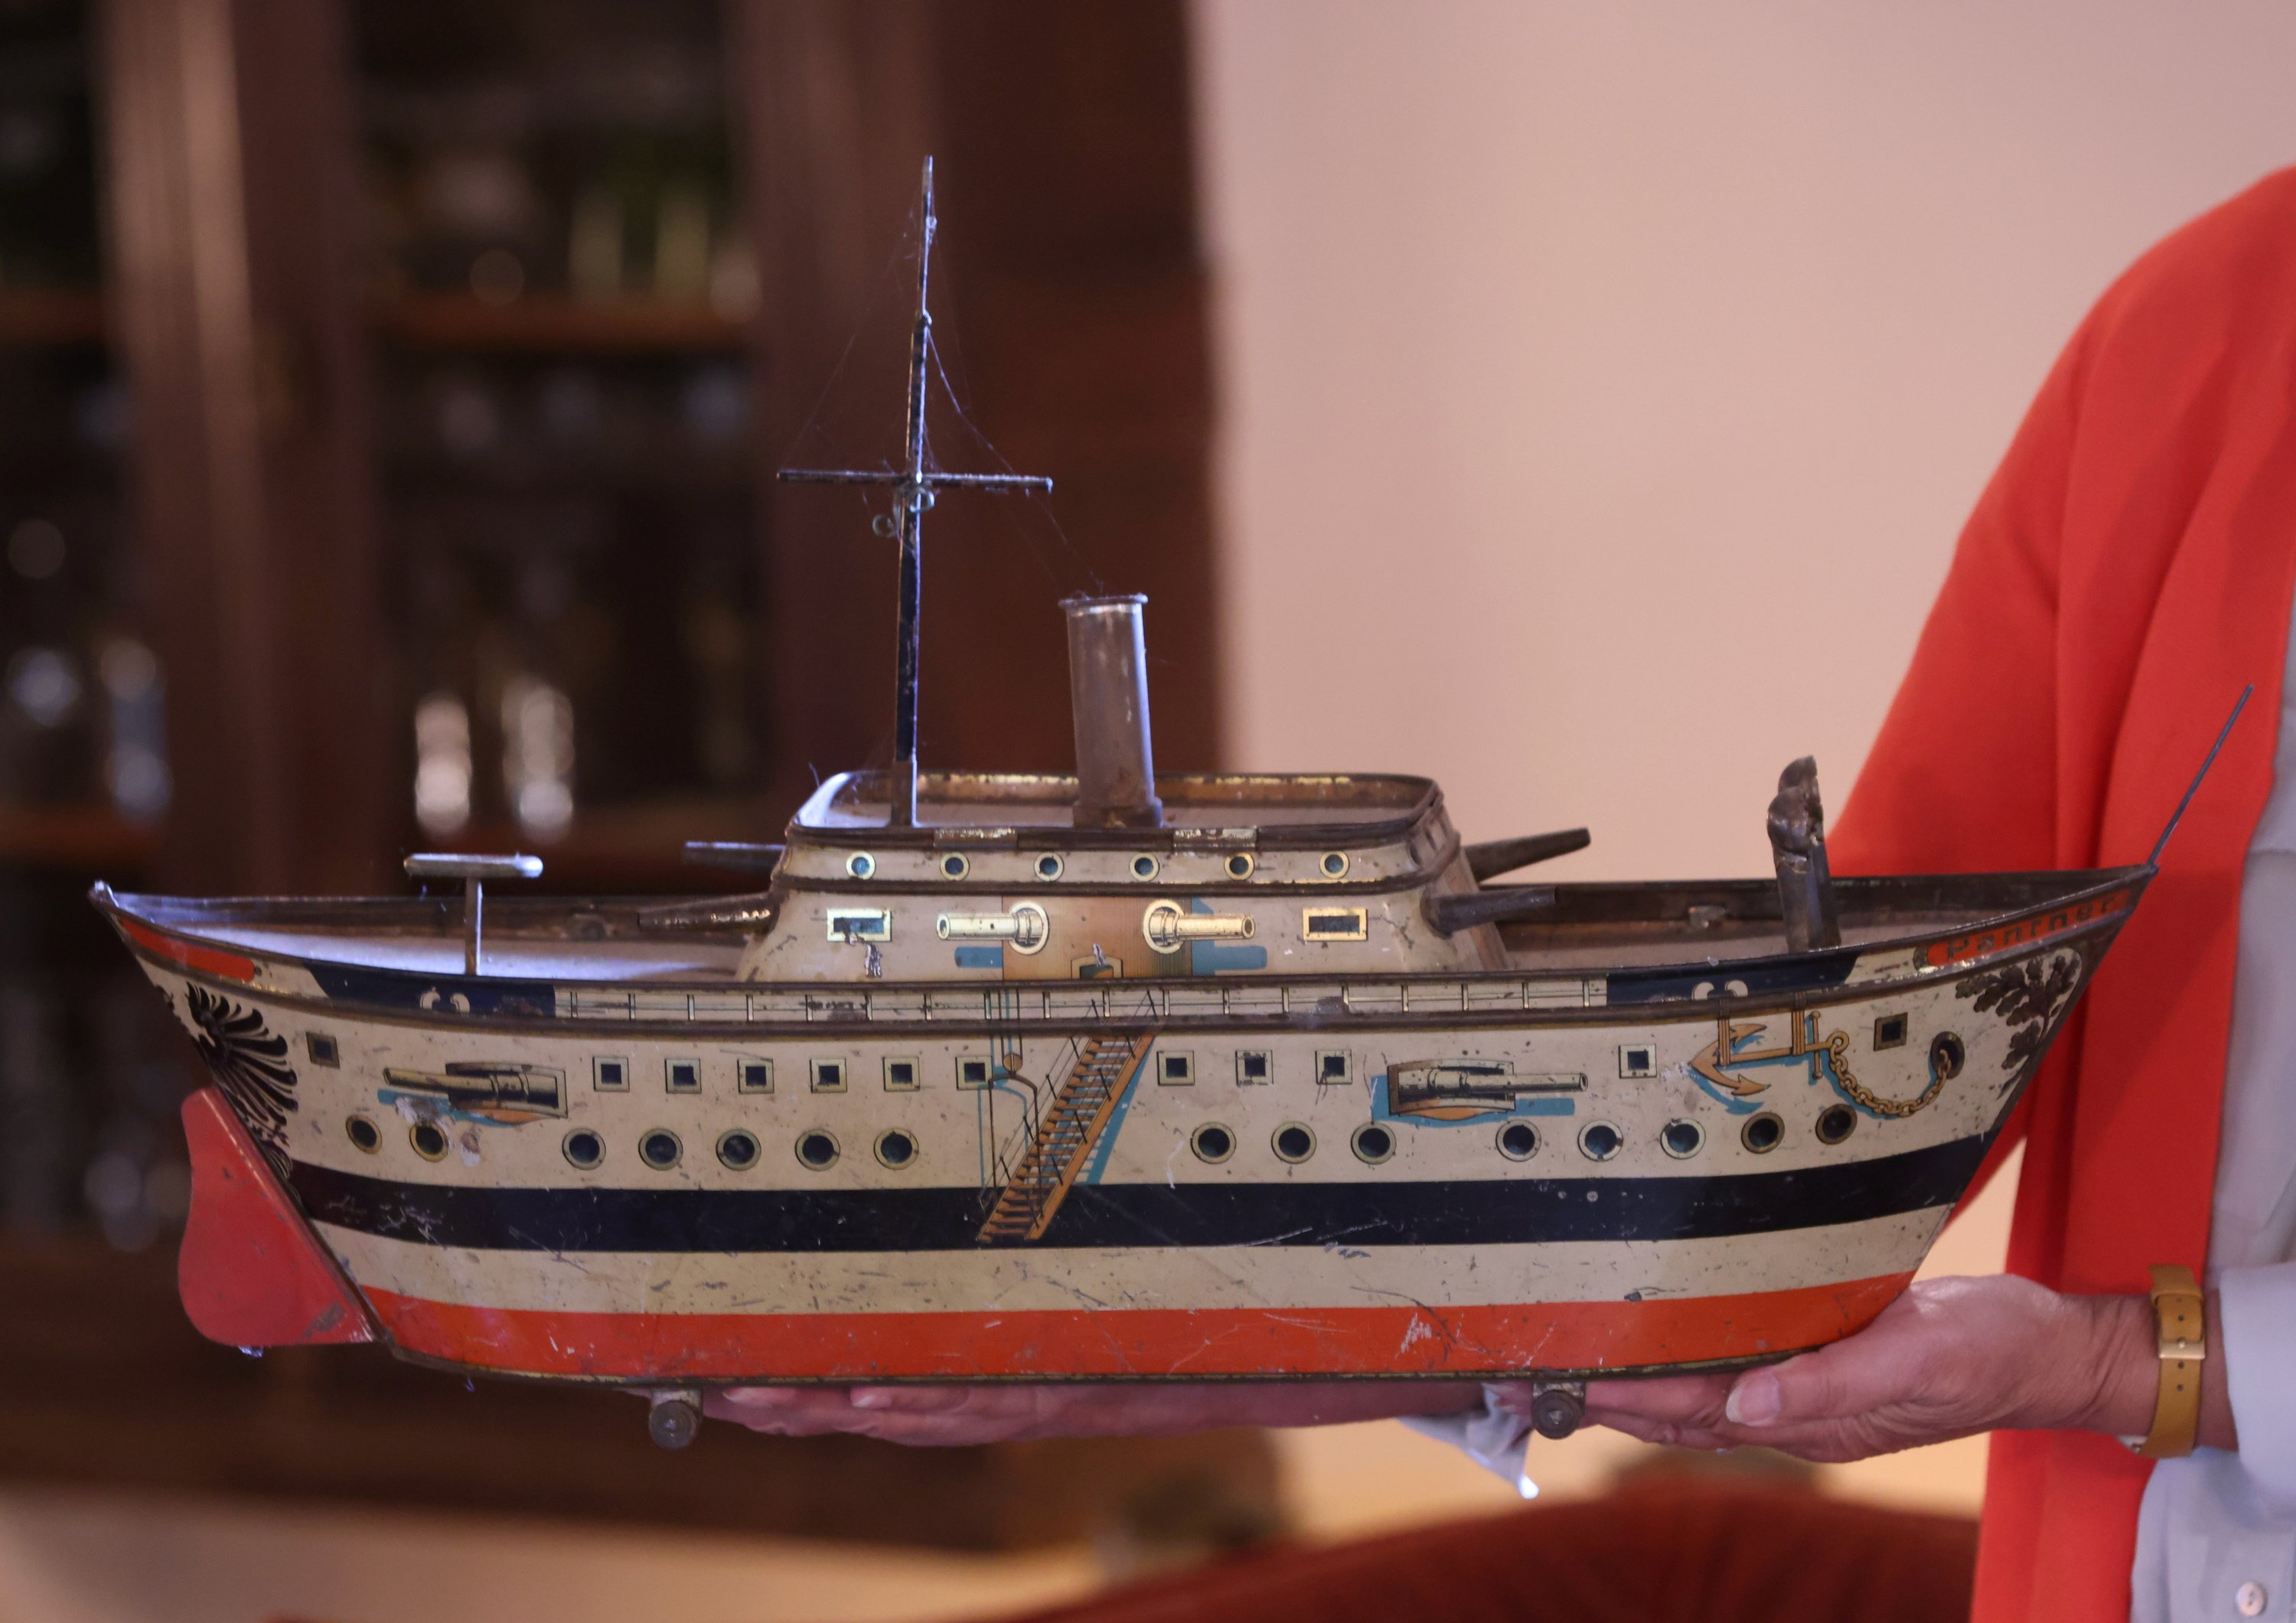 A metal vintage lithographed tin box in shape of a boat, part of a huge collection of almost 60,000 pieces started 30 years ago by Yvette Dardenne, 83, is displayed at her house in Grand-Hallet, Belgium, Aug. 5, 2021. (Reuters Photo)